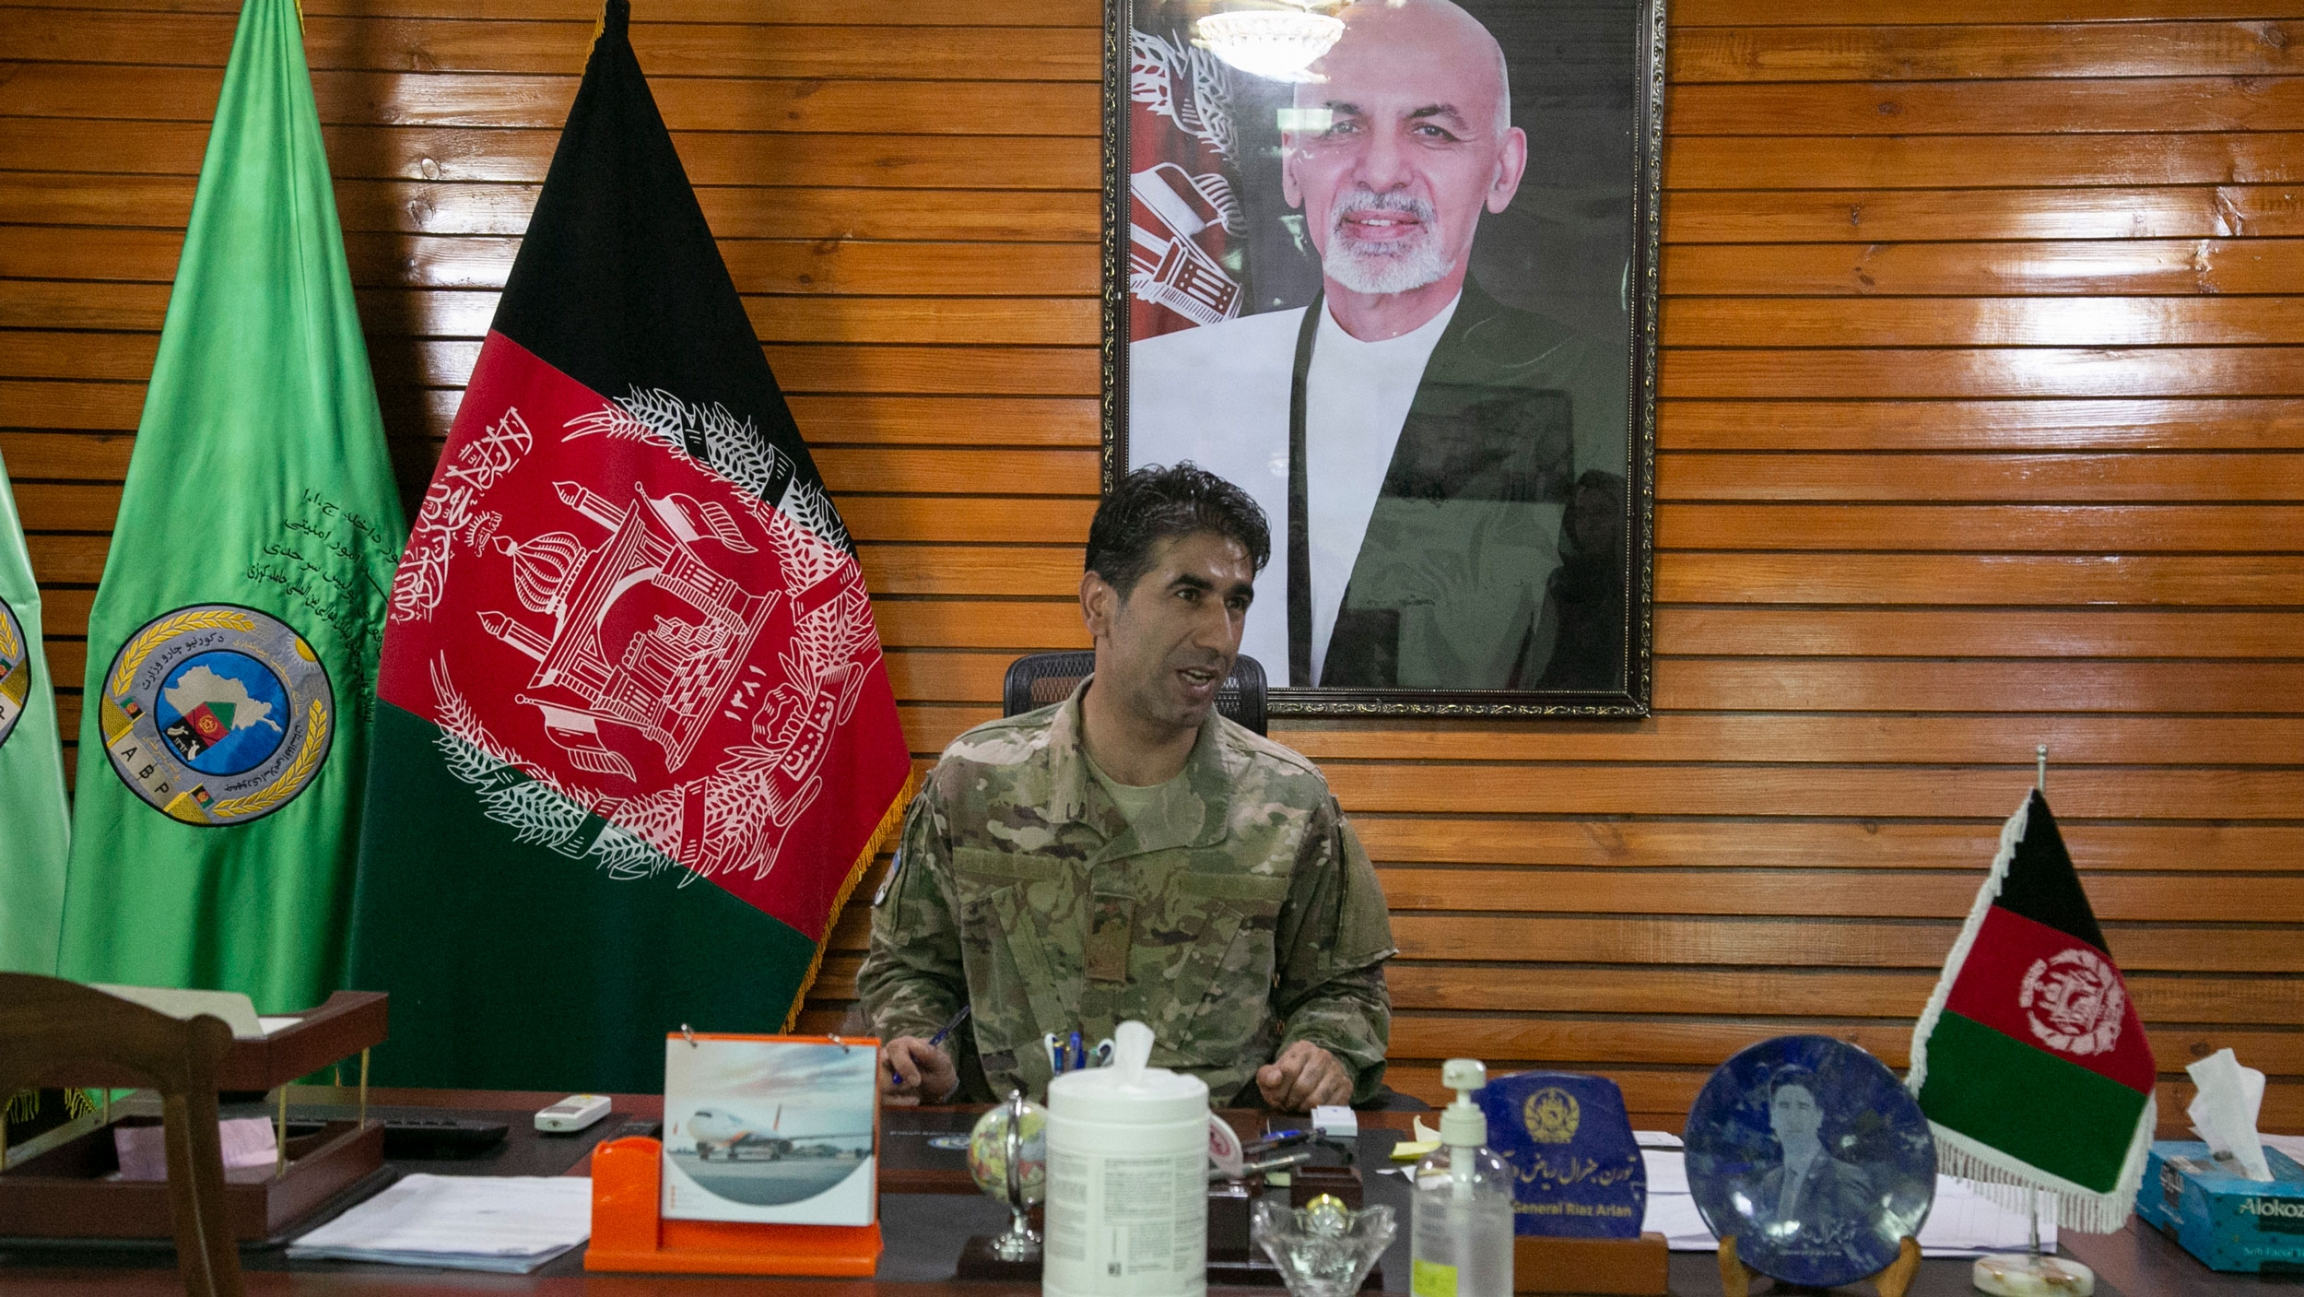 Maj. Gen. Mohammad Reyaz Arian is shown sitting at a large wooden desk and wearing military fatigues with the Afghanistan flag and a portrait photo of former President Ashraf Ghani on the wall.